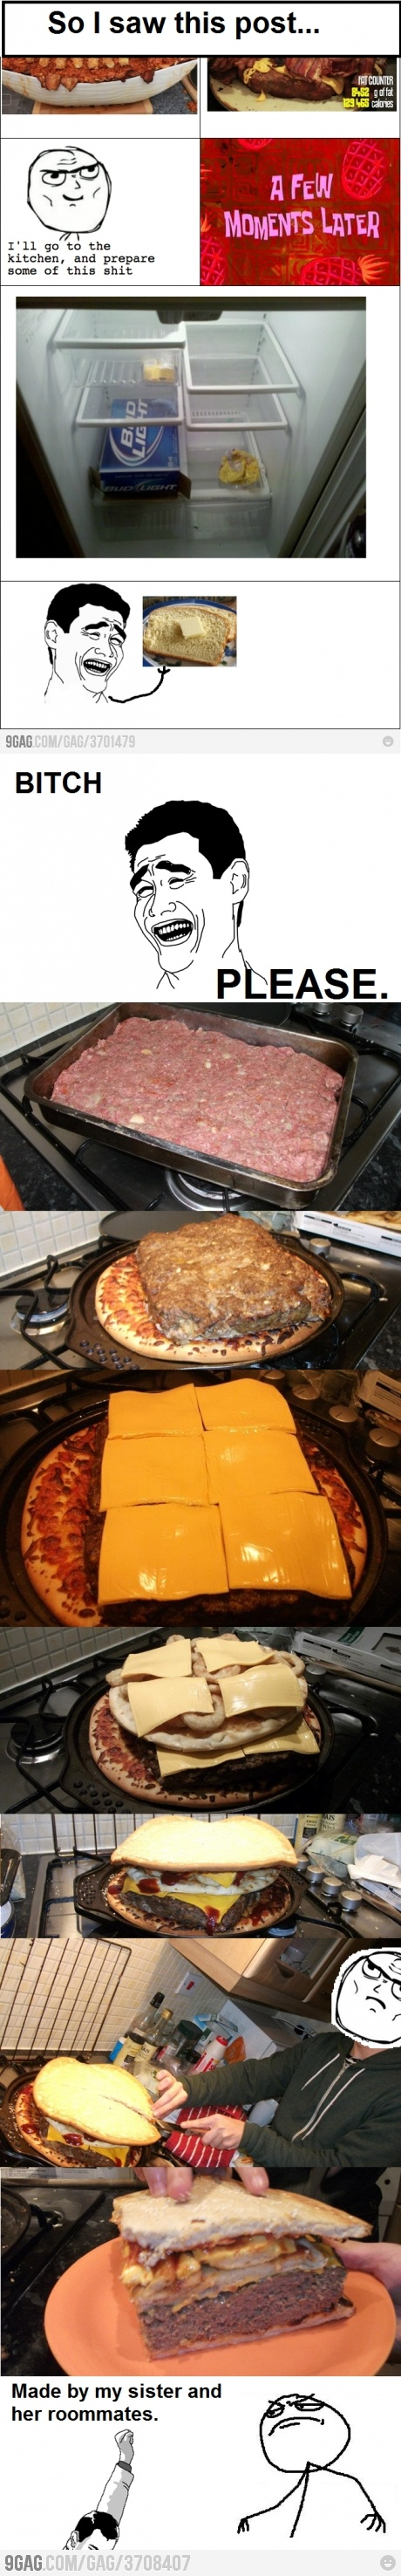 Doing Epic Meal Time, LIKE A BOSS!